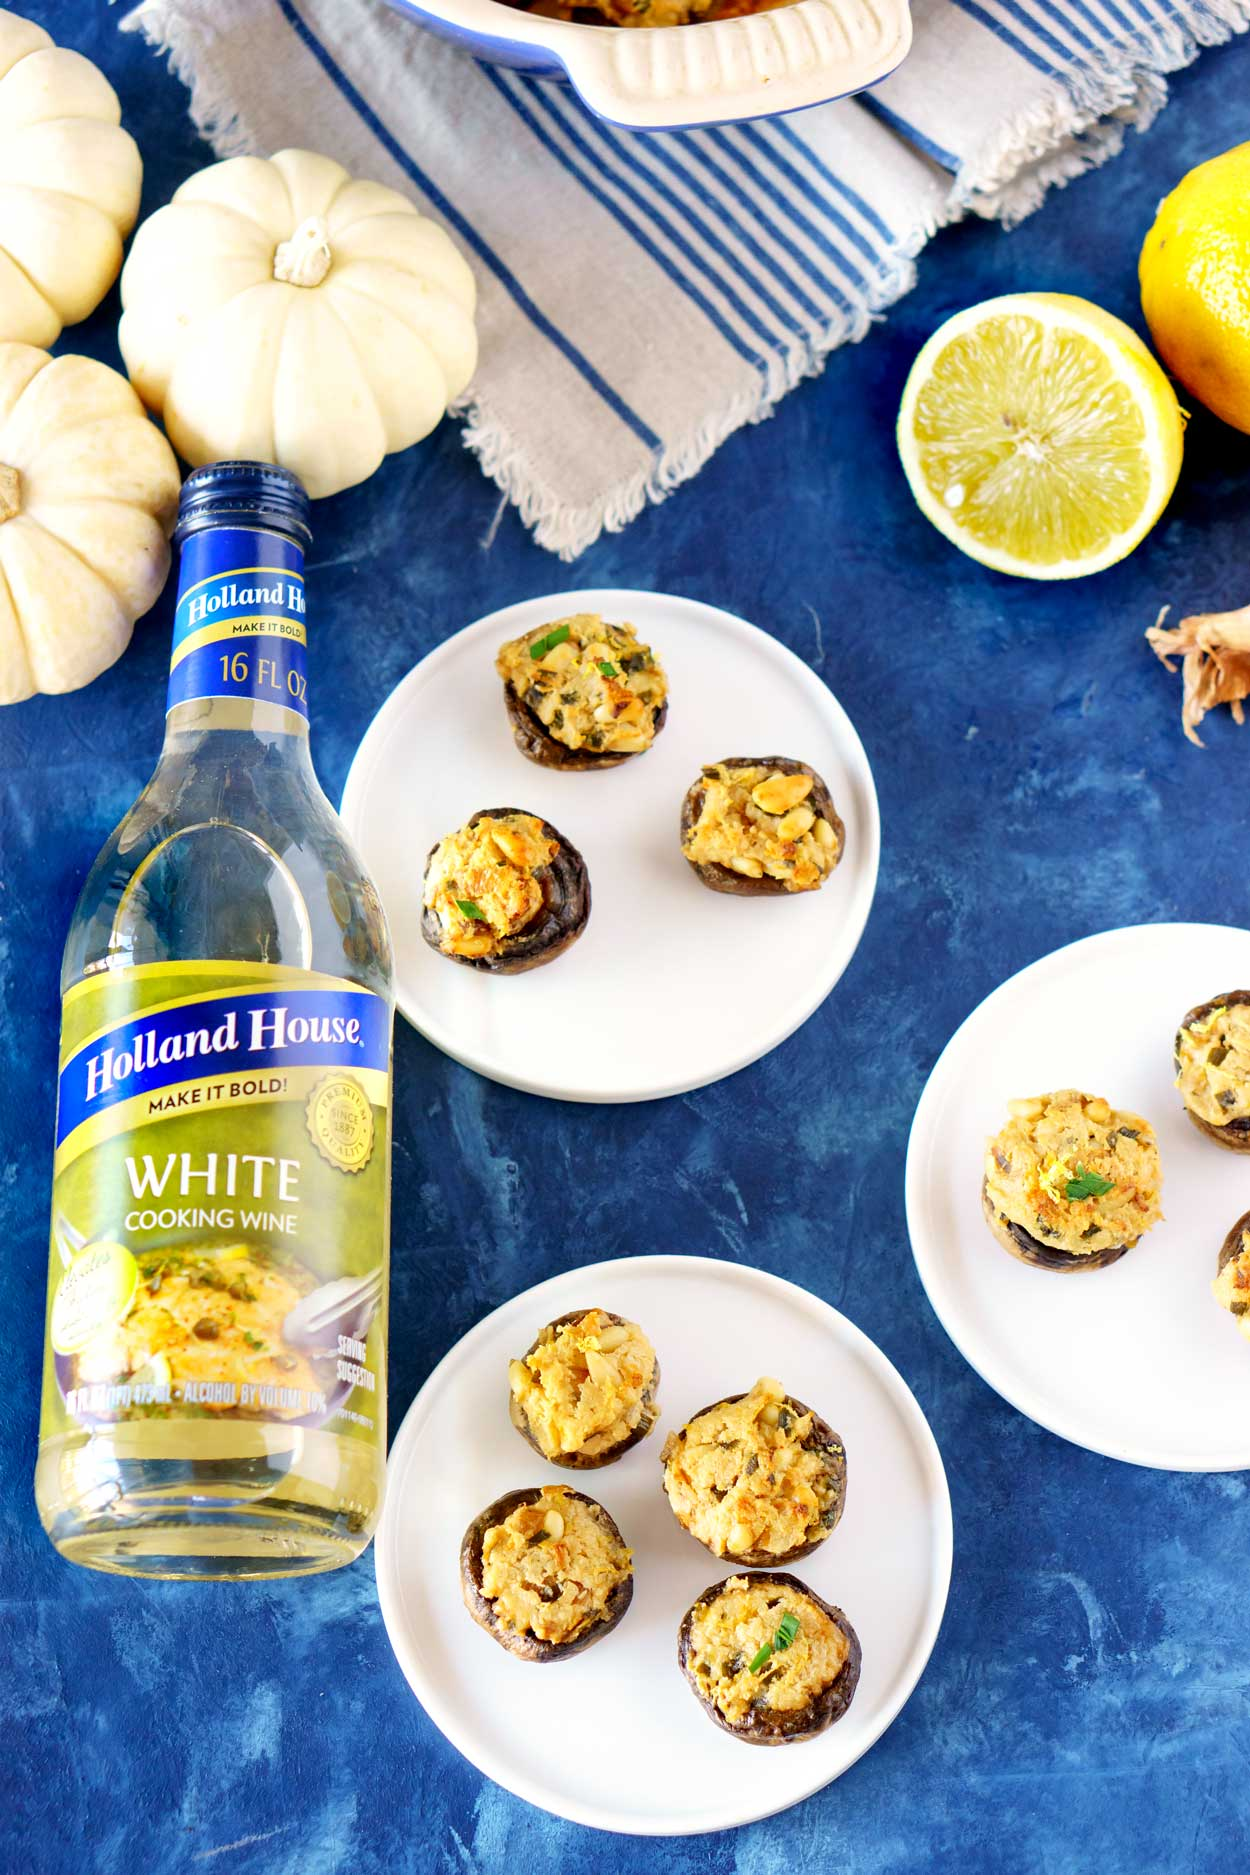 Stuffed Mushrooms with Goat Cheese and Pinenuts that can be made ahead of time!